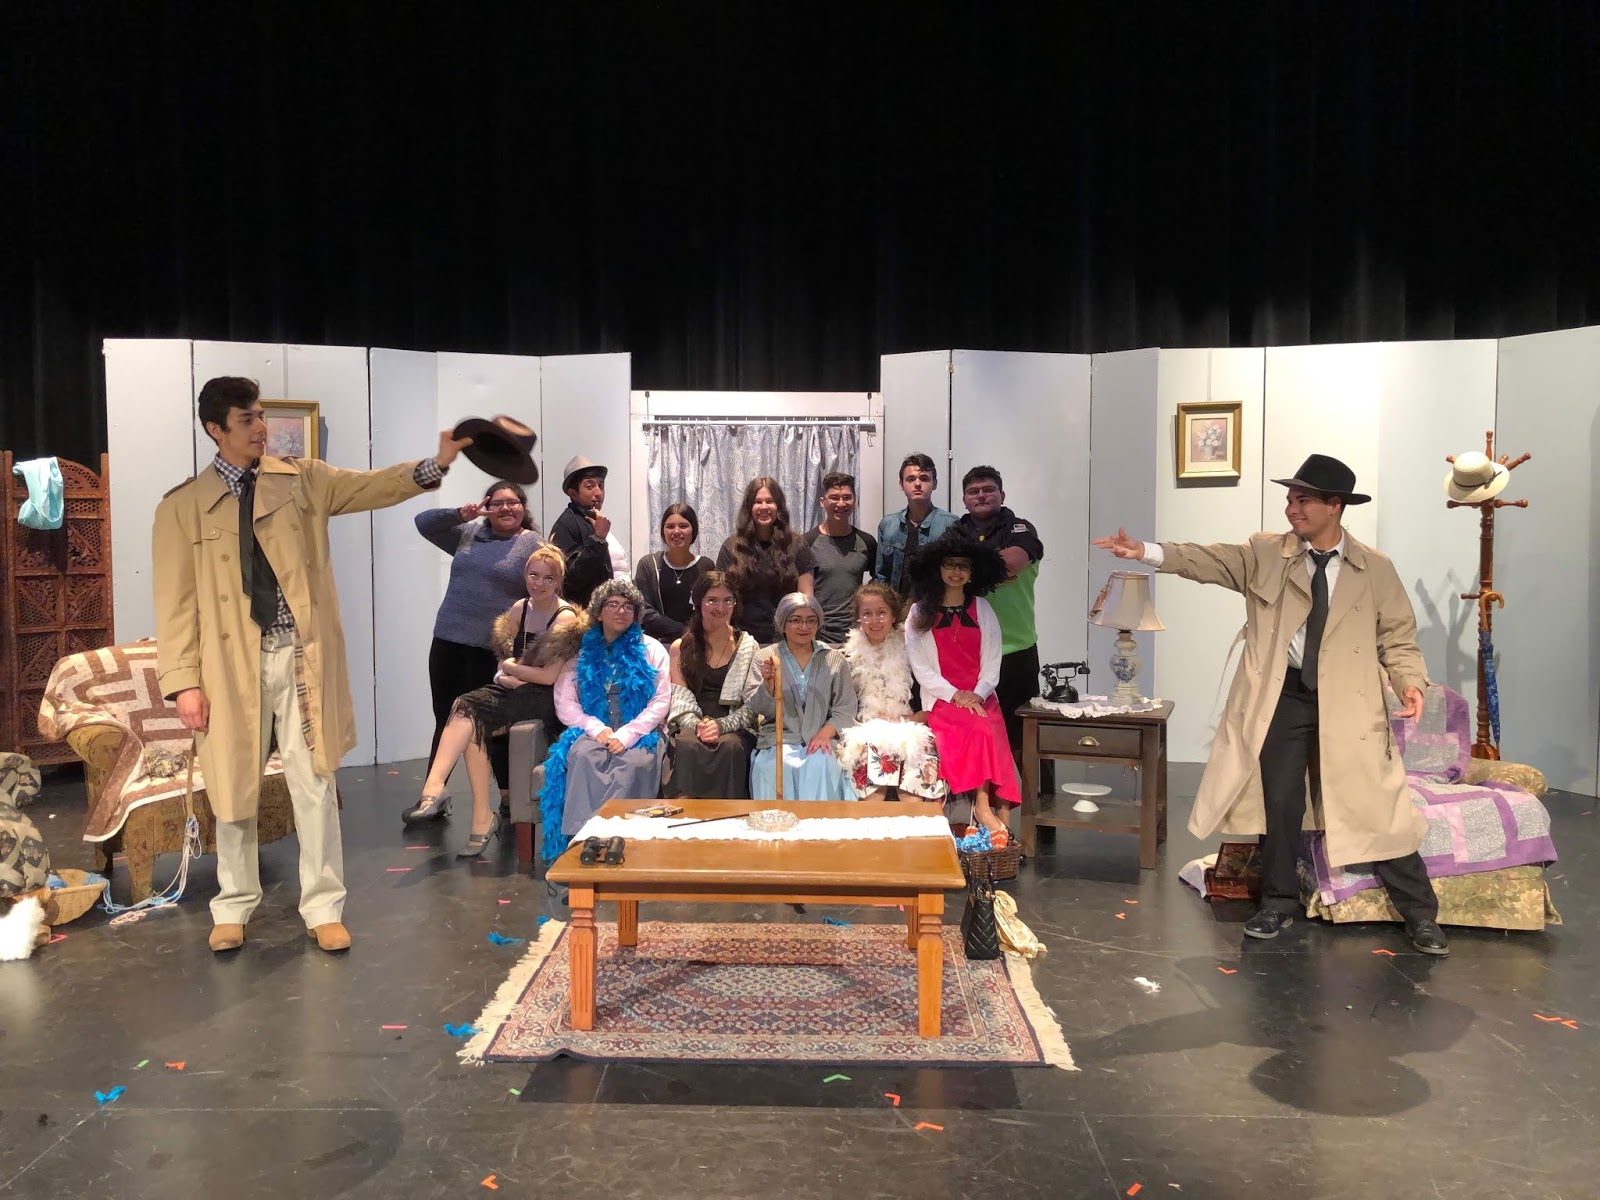 Eagle Pass ISD - iVision: EPHS One Act Play Sets the Stage